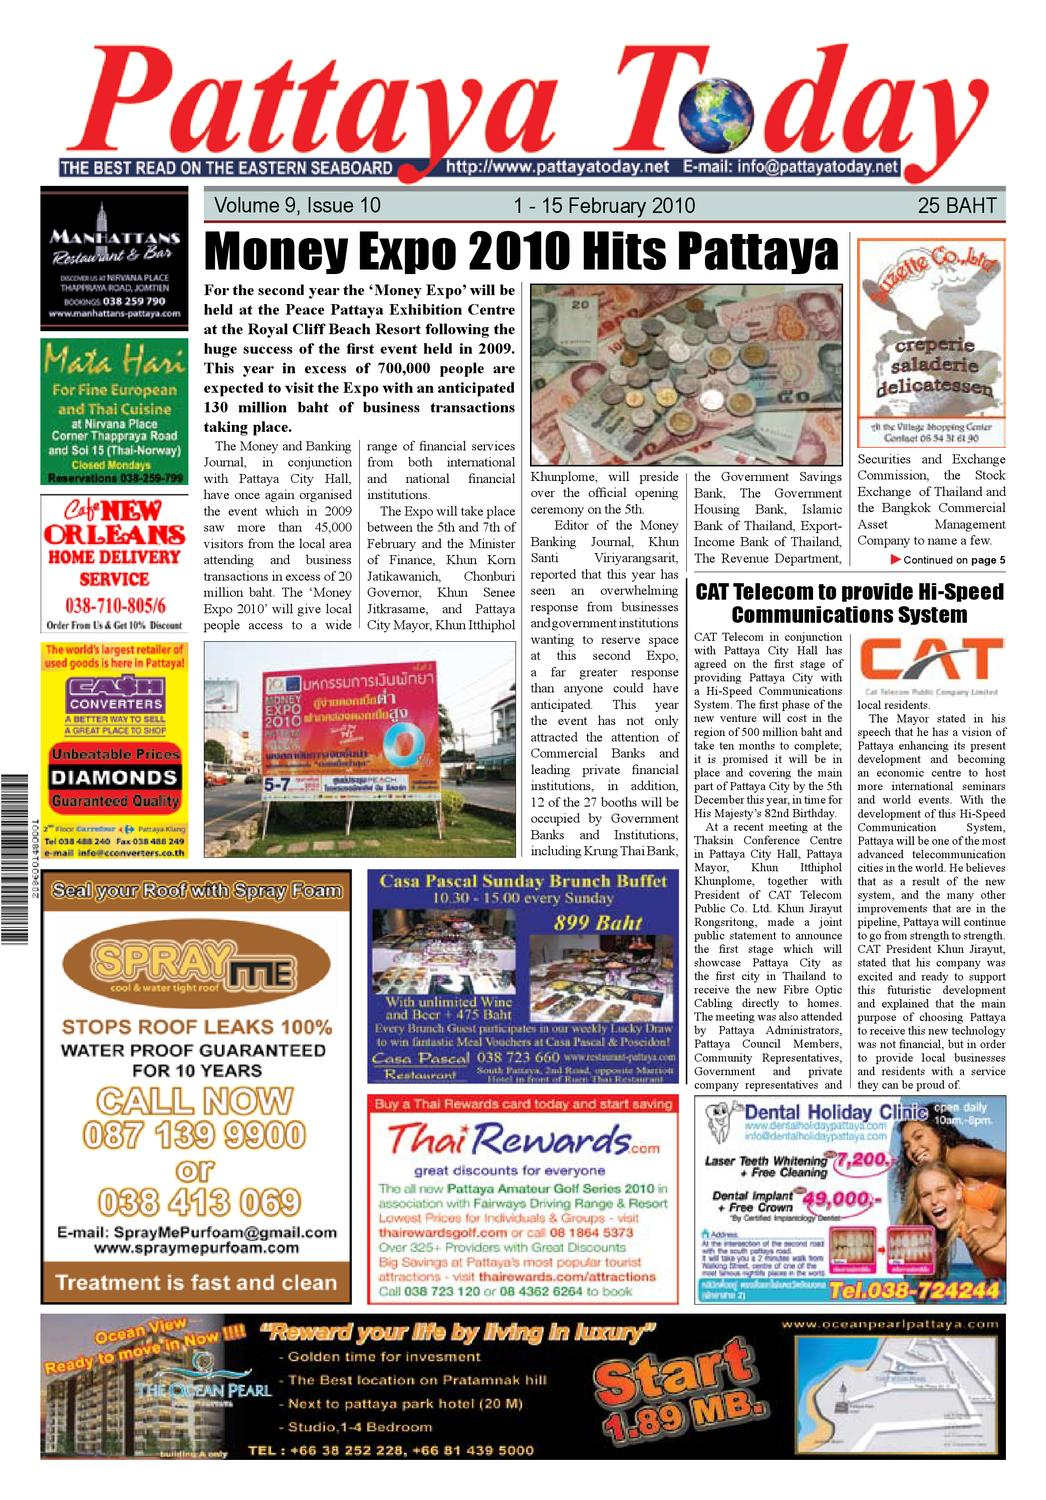 8822a1239fee3 Pattaya Today Volume 9 Issue 10 by Pattaya Today - issuu